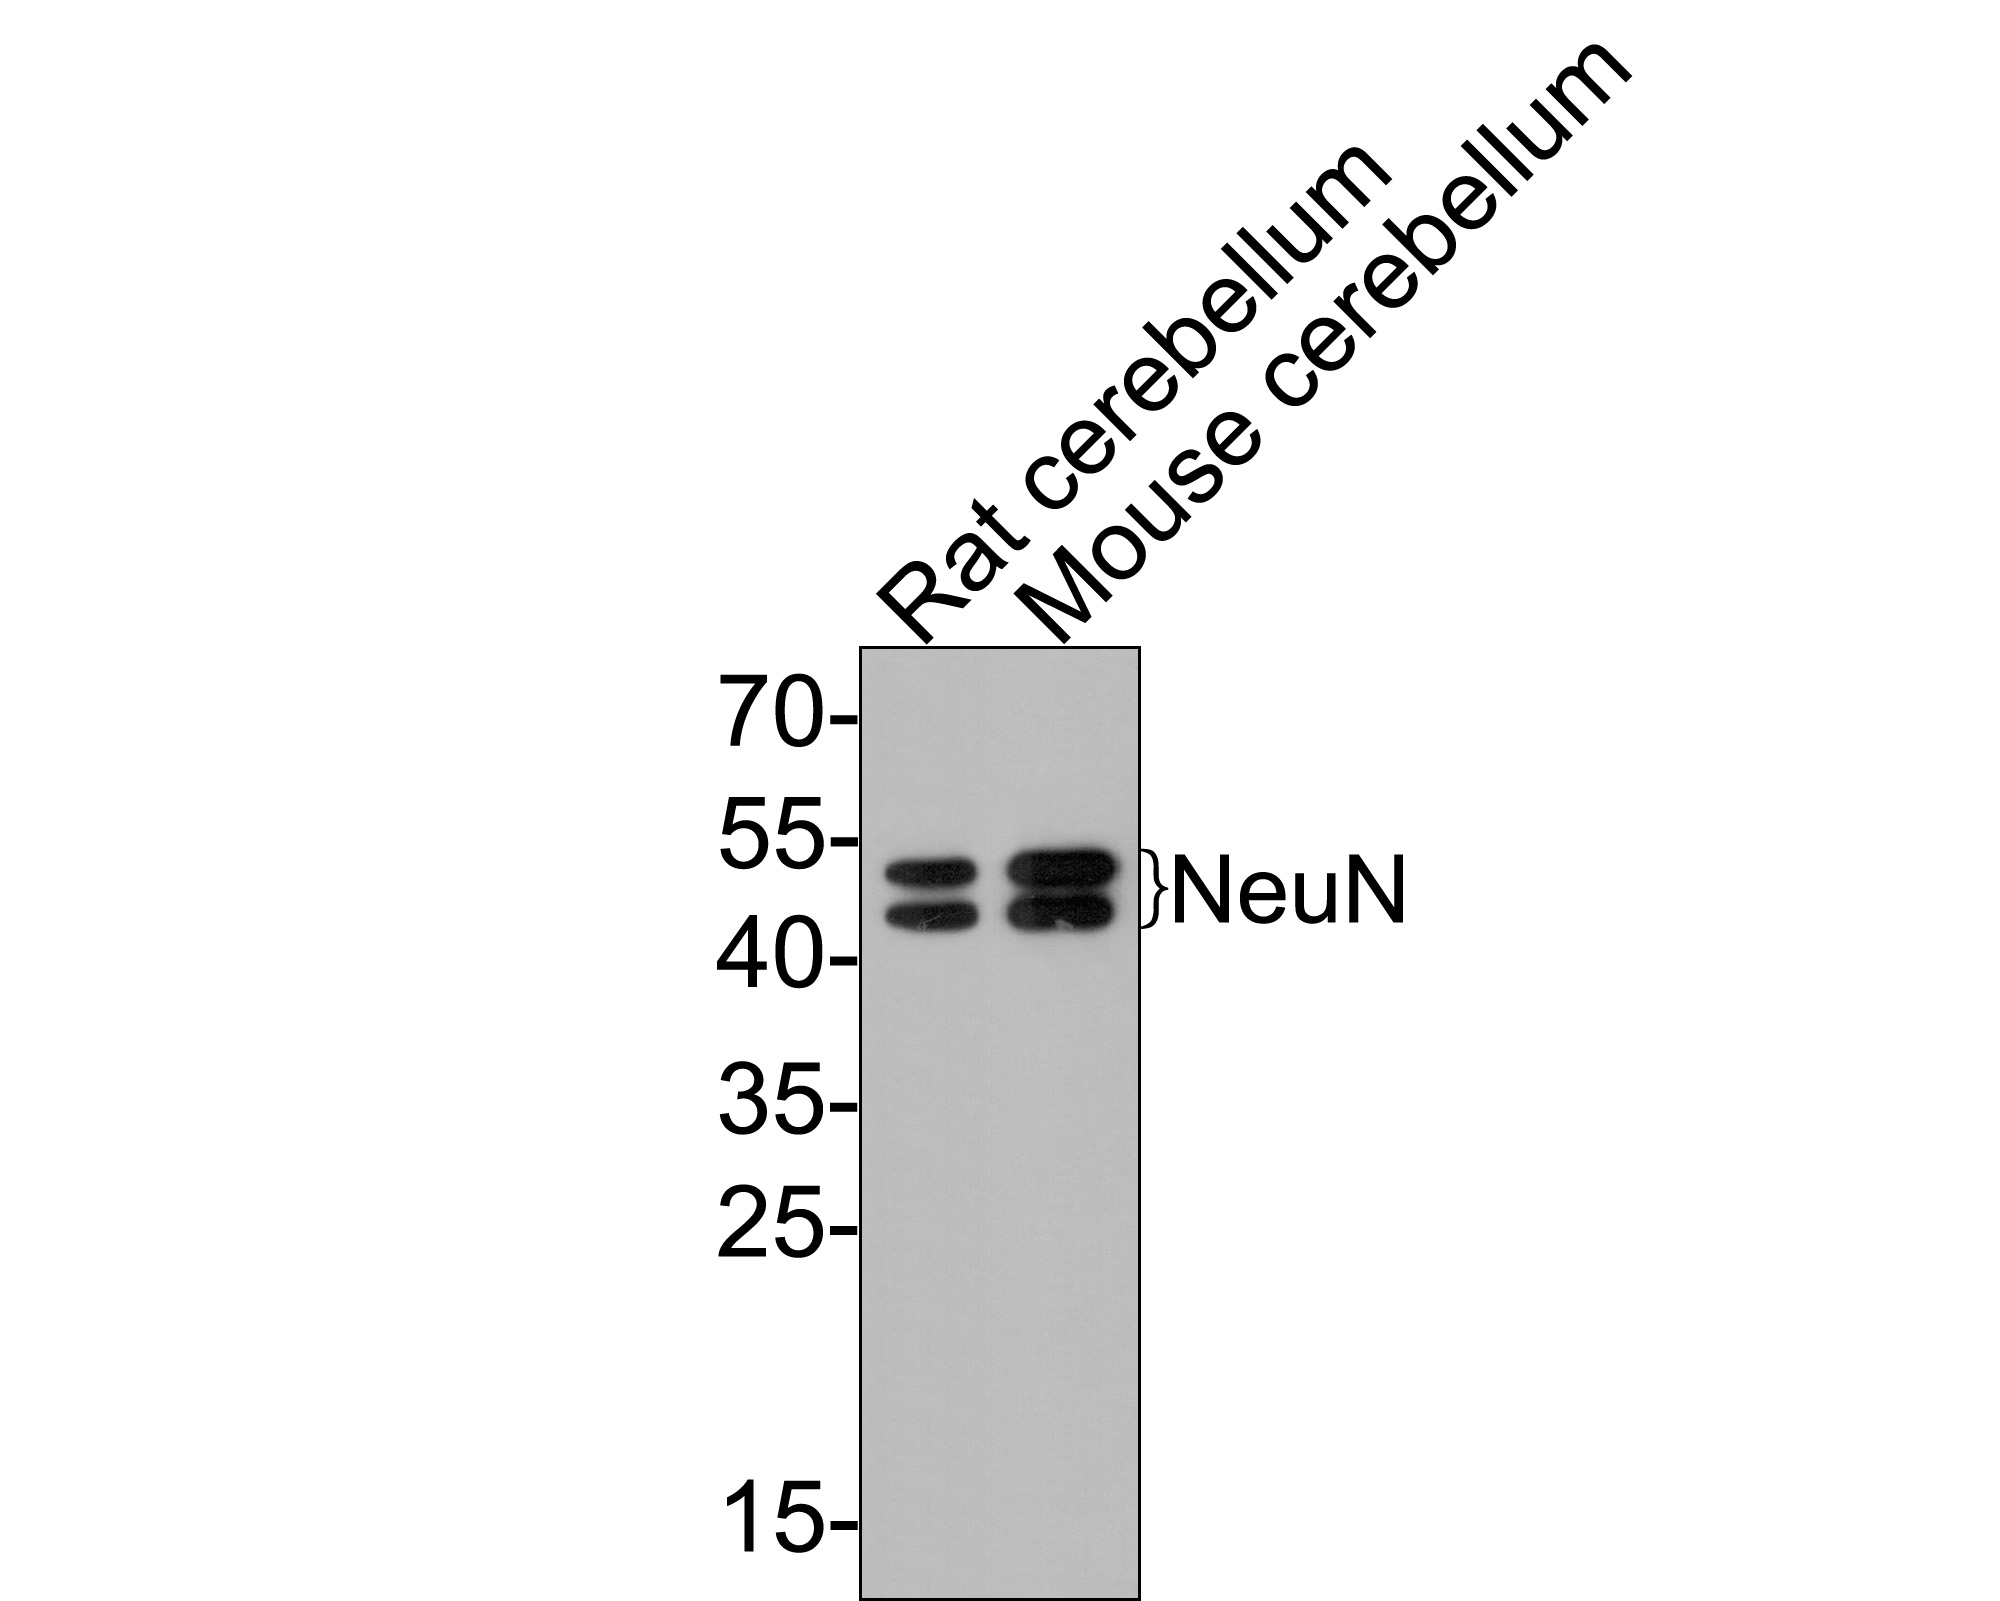 Flow cytometric analysis of NeuN was done on SH-SY5Y cells. The cells were fixed, permeabilized and stained with the primary antibody (ET1602-12, 1/50) (blue). After incubation of the primary antibody at room temperature for an hour, the cells were stained with a Alexa Fluor 488-conjugated Goat anti-Rabbit IgG Secondary antibody at 1/1000 dilution for 30 minutes.Unlabelled sample was used as a control (cells without incubation with primary antibody; red).